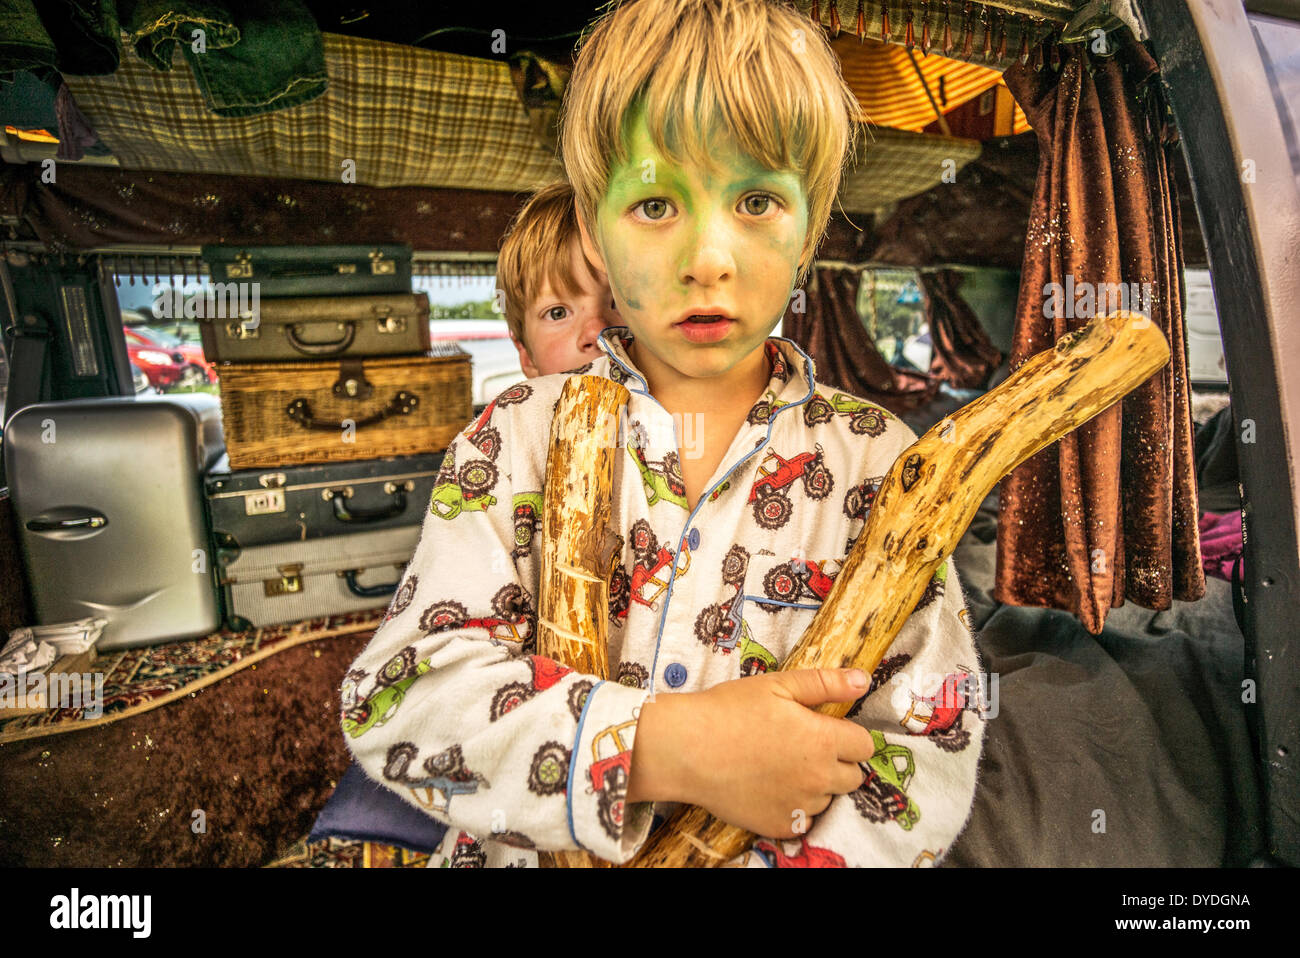 Two boys having fun in a VW camper van  at a festival. Stock Photo